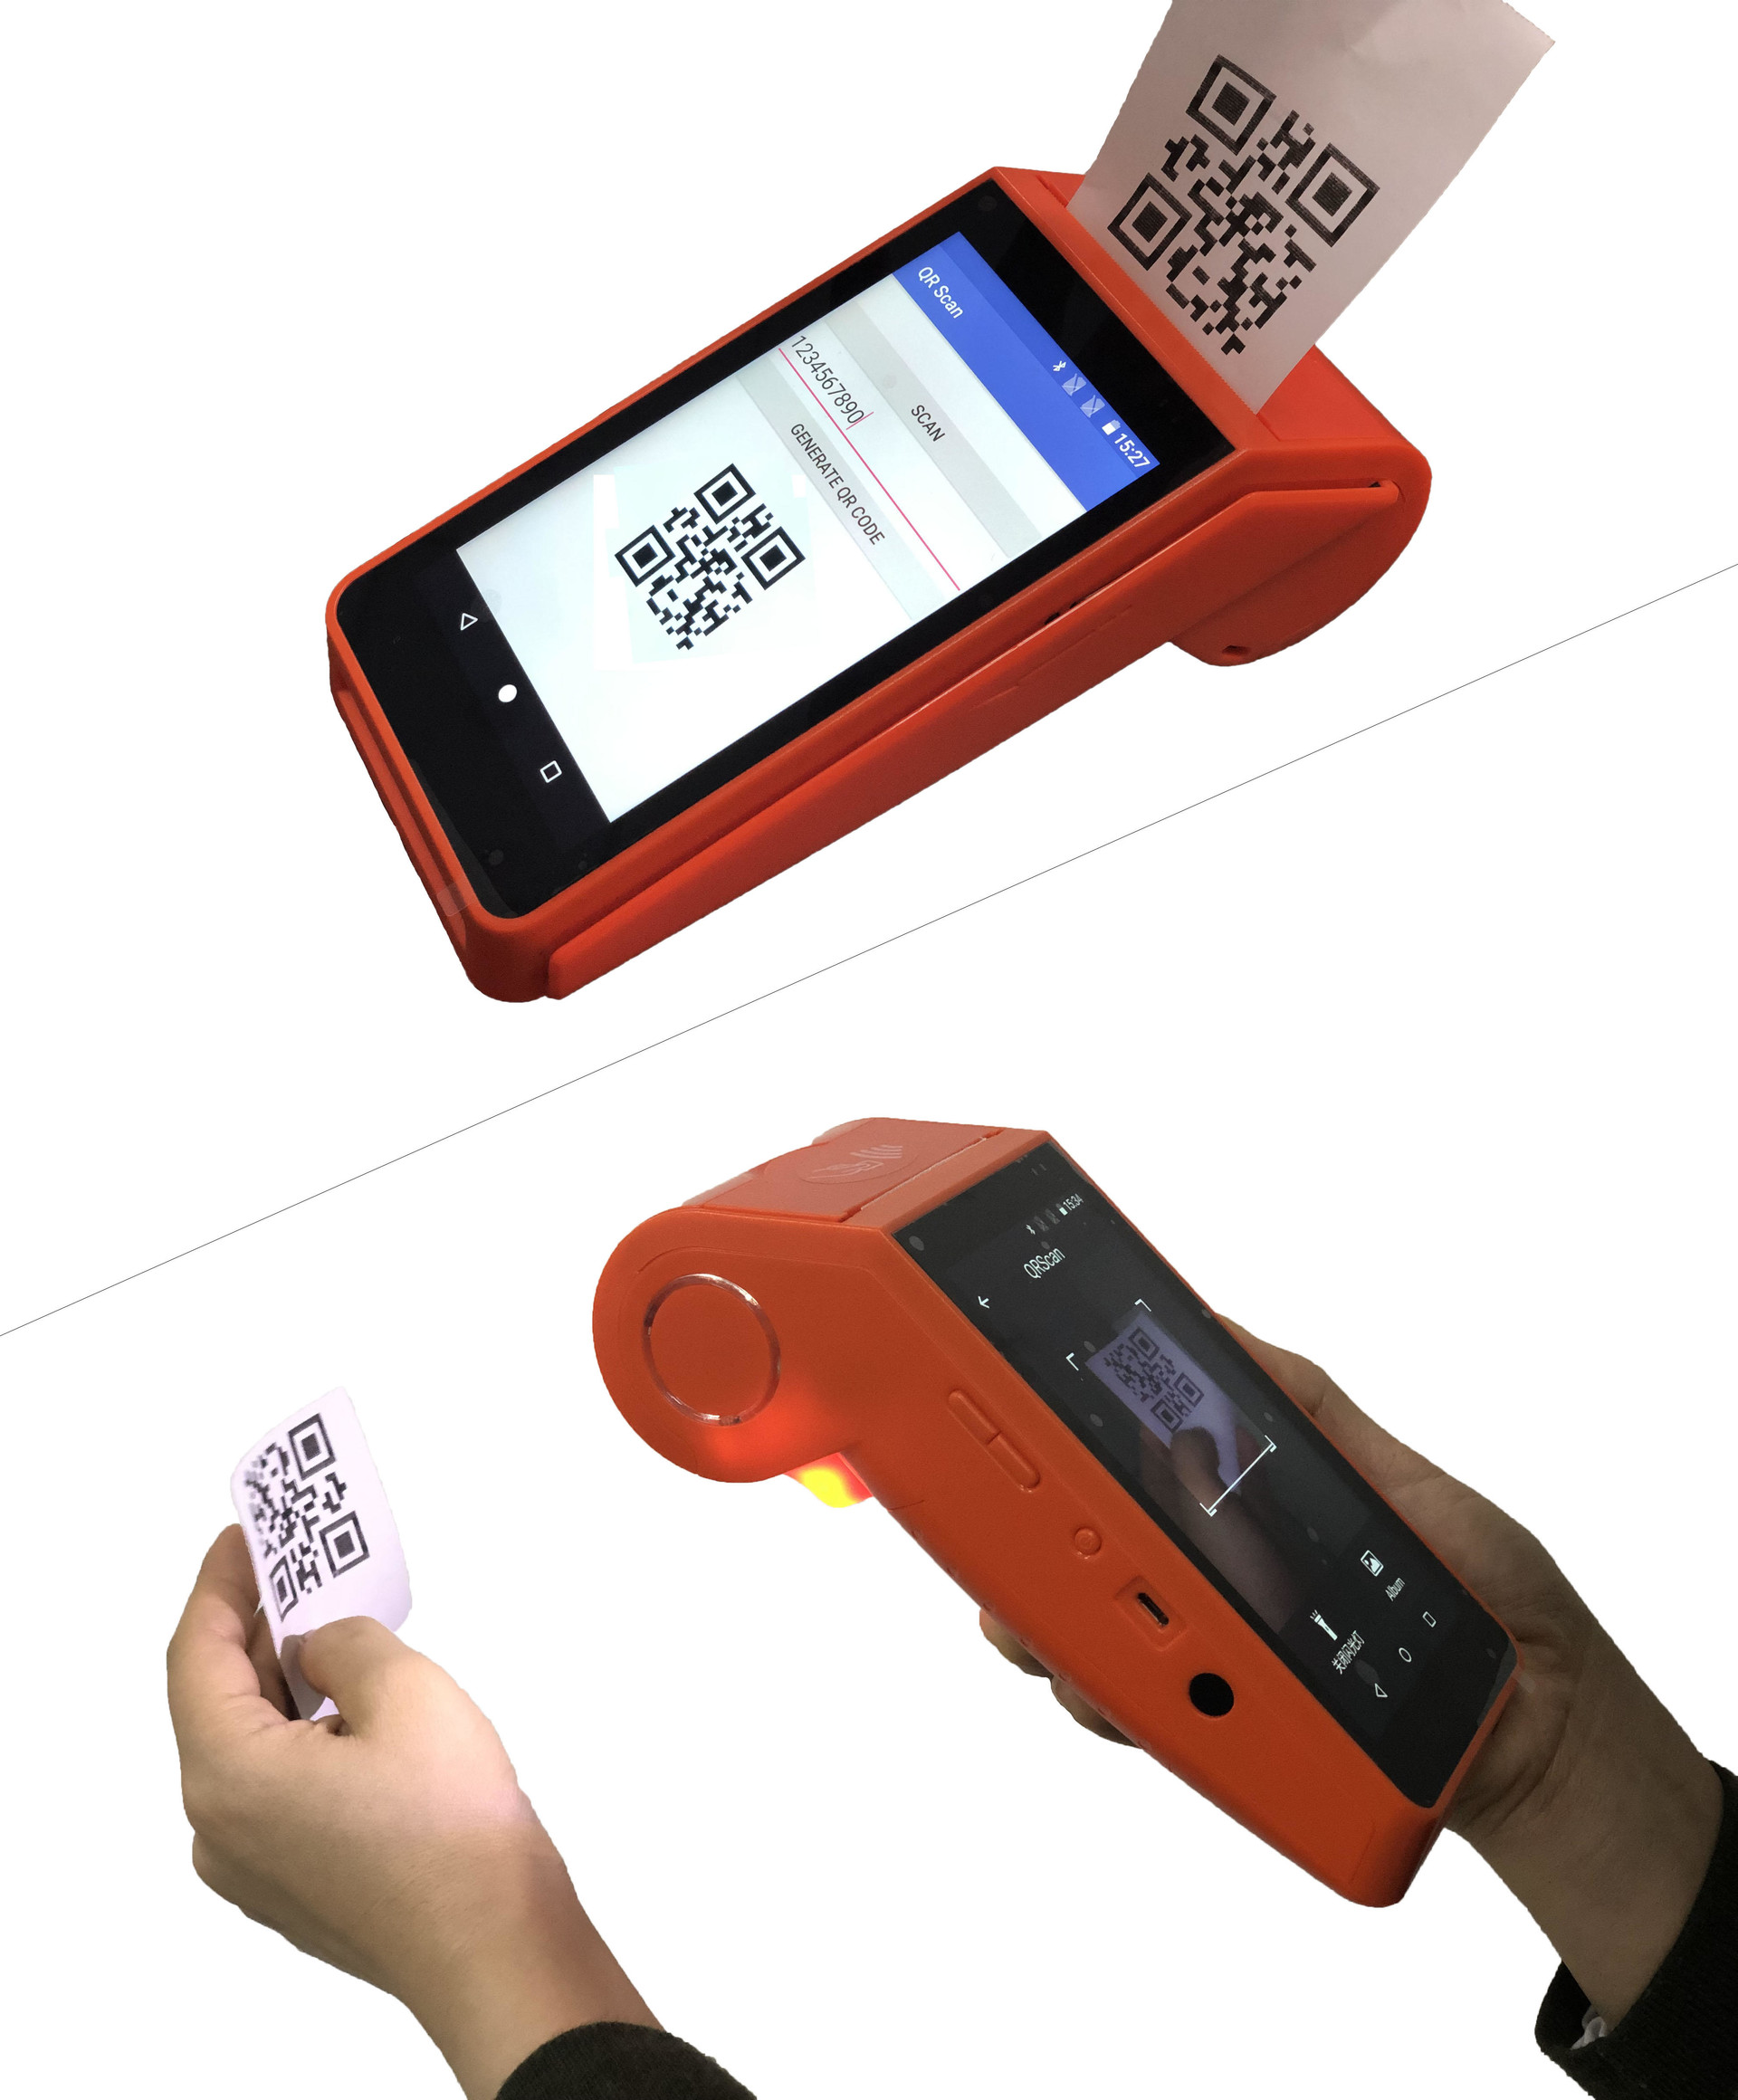 Mobile Smart Handheld Android POS Machine with Integrated Printer for Electronic Voucher